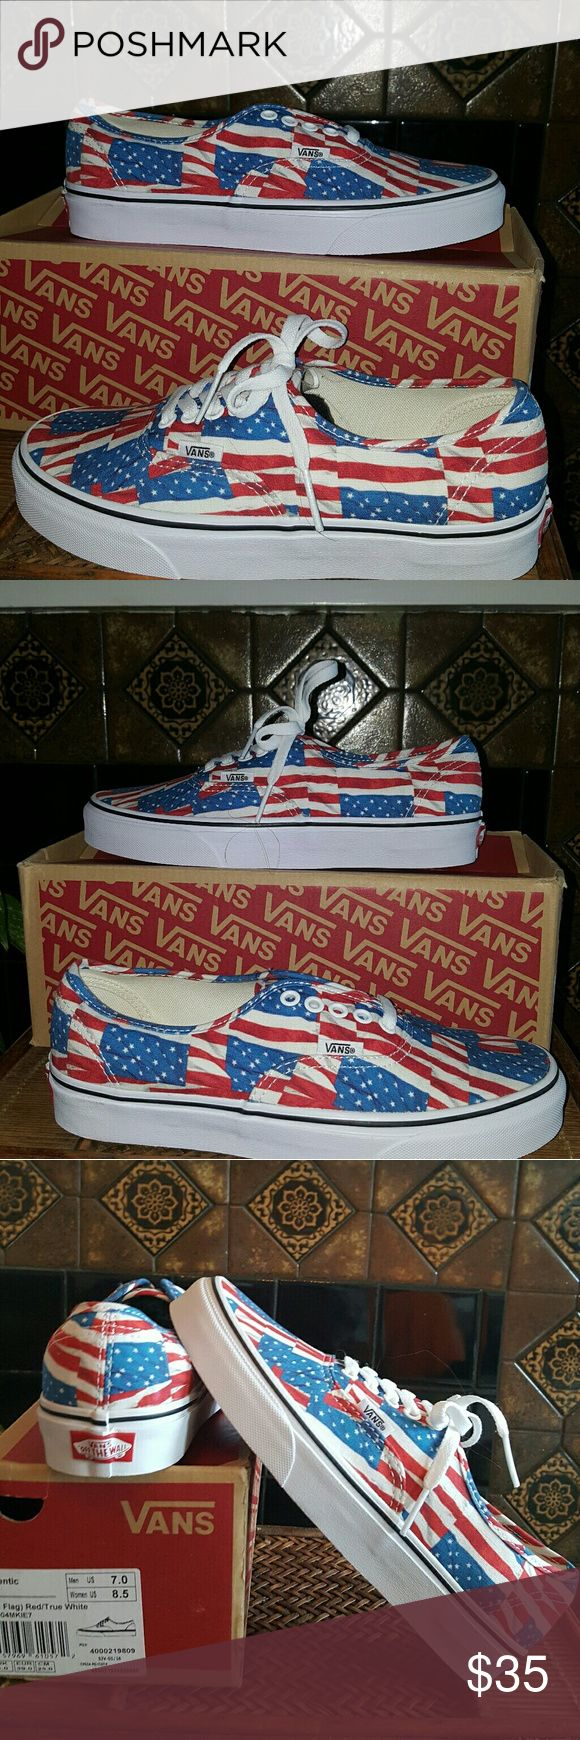 4 The Red White & Blue Vans Great Sneaker for Memorial Day, 4th of July, or Labor Day....any patriotic holiday. Awesome any day, with jeans leggings shorts skirts and sundresses. Also sk8ter wear, workout gear. Size 8.5 women's and 7.0 men's. Originally from 55.00 - but seen selling up to.99.00 #barbarajeannexo Vans  Shoes Sneakers